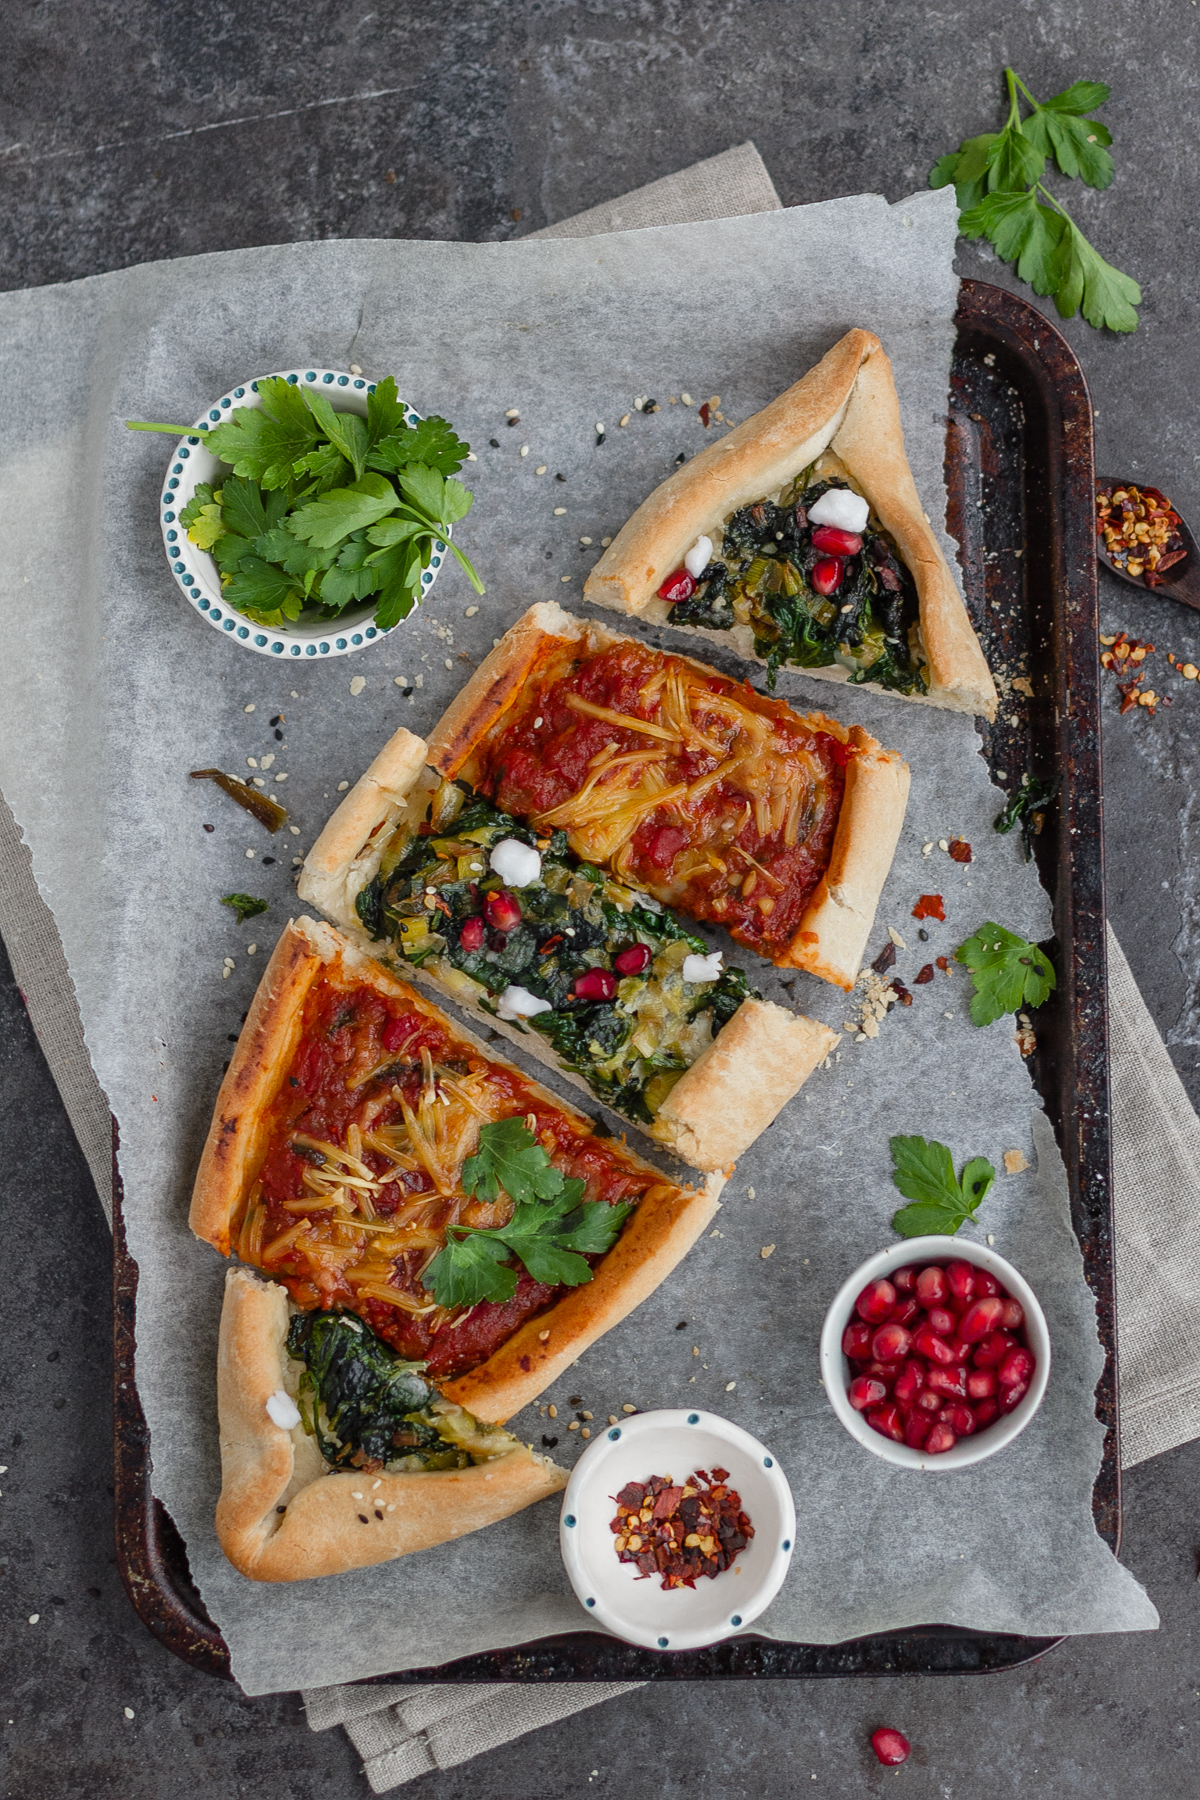 combination of two vegan pide (turkish flat bread) including spinach, leek and vegan feta plus aubergine, tomato and red peper. Toppings in small bowl include pomegranate, chilli flaked and parsley